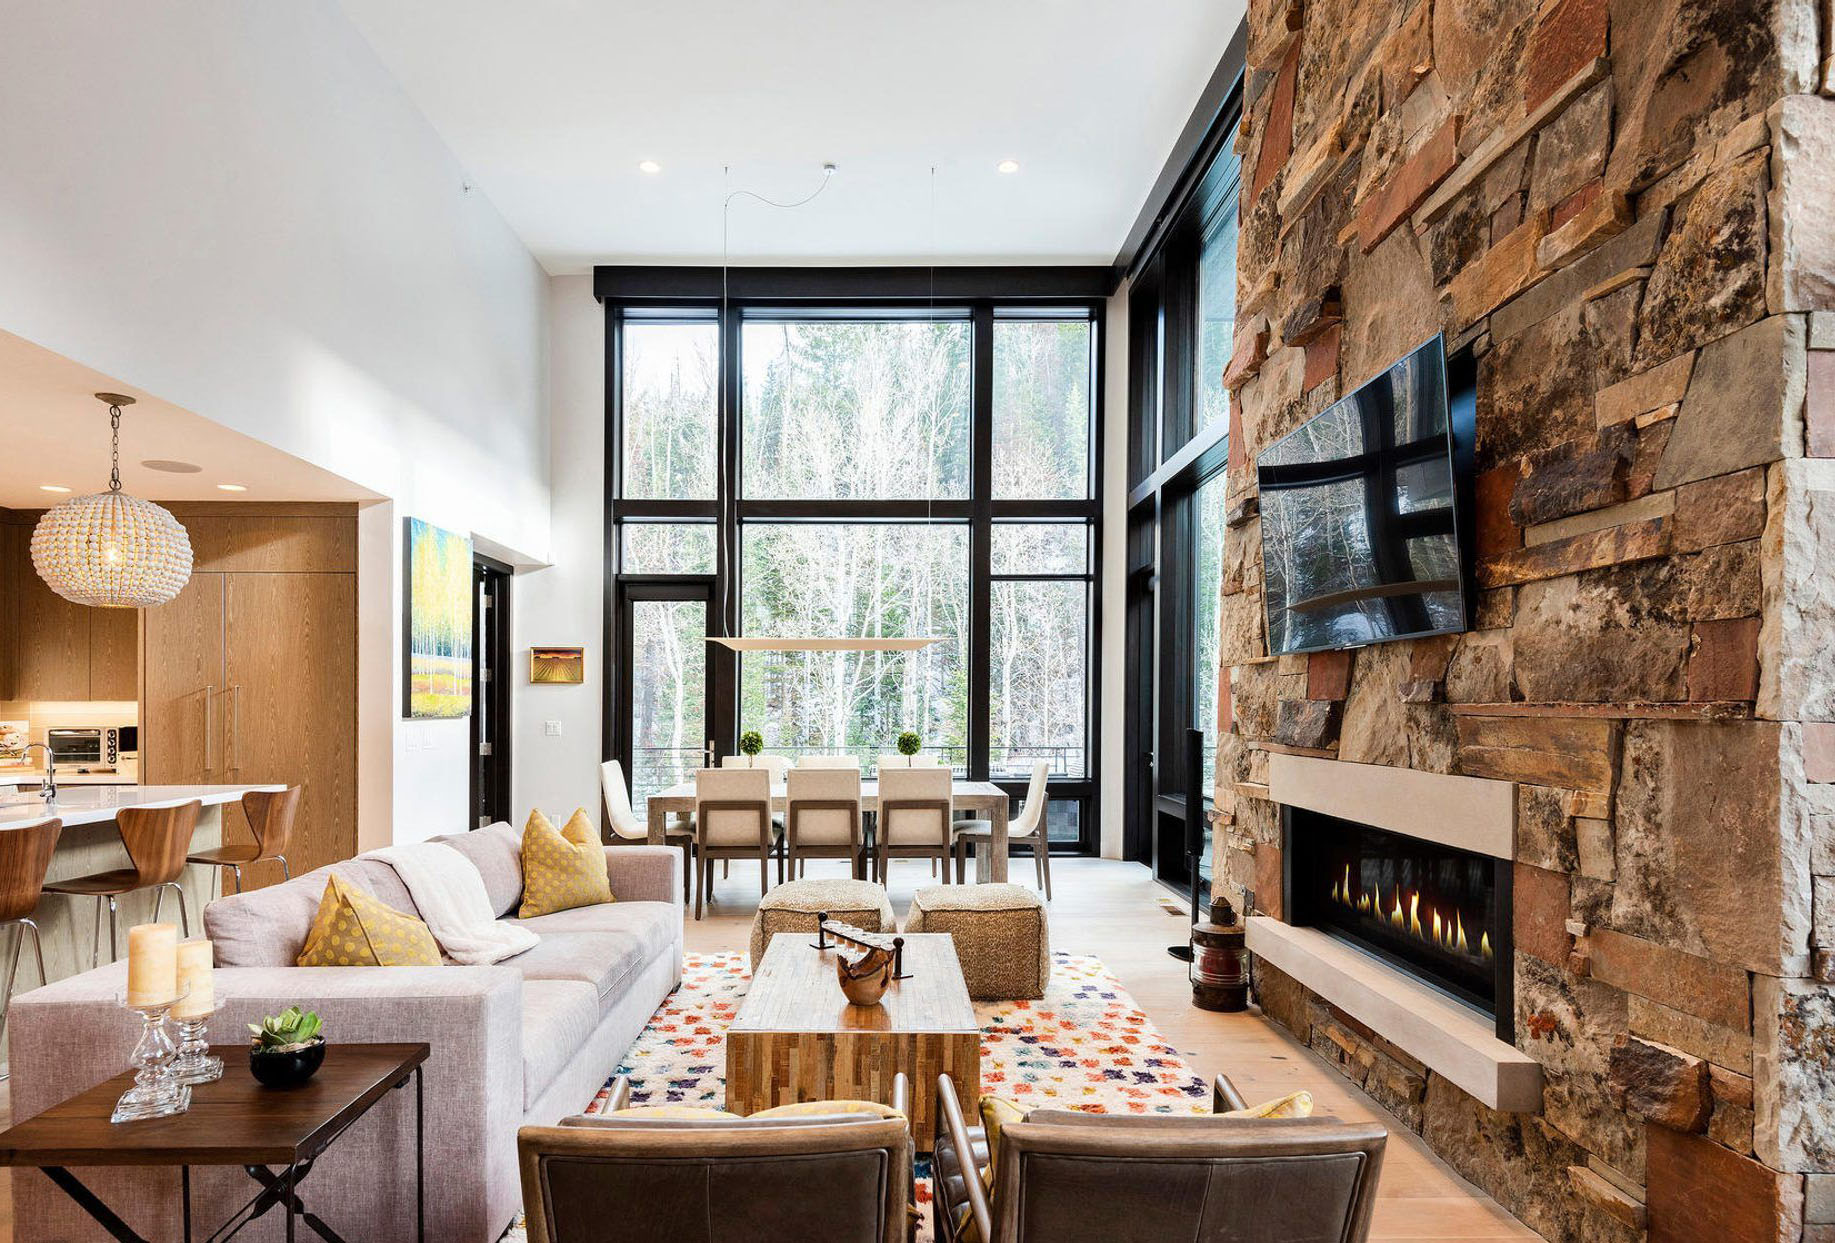 Rustic stacked stone with a warm brown color scheme including a modern style gas fireplace and mounted flat screen TV.